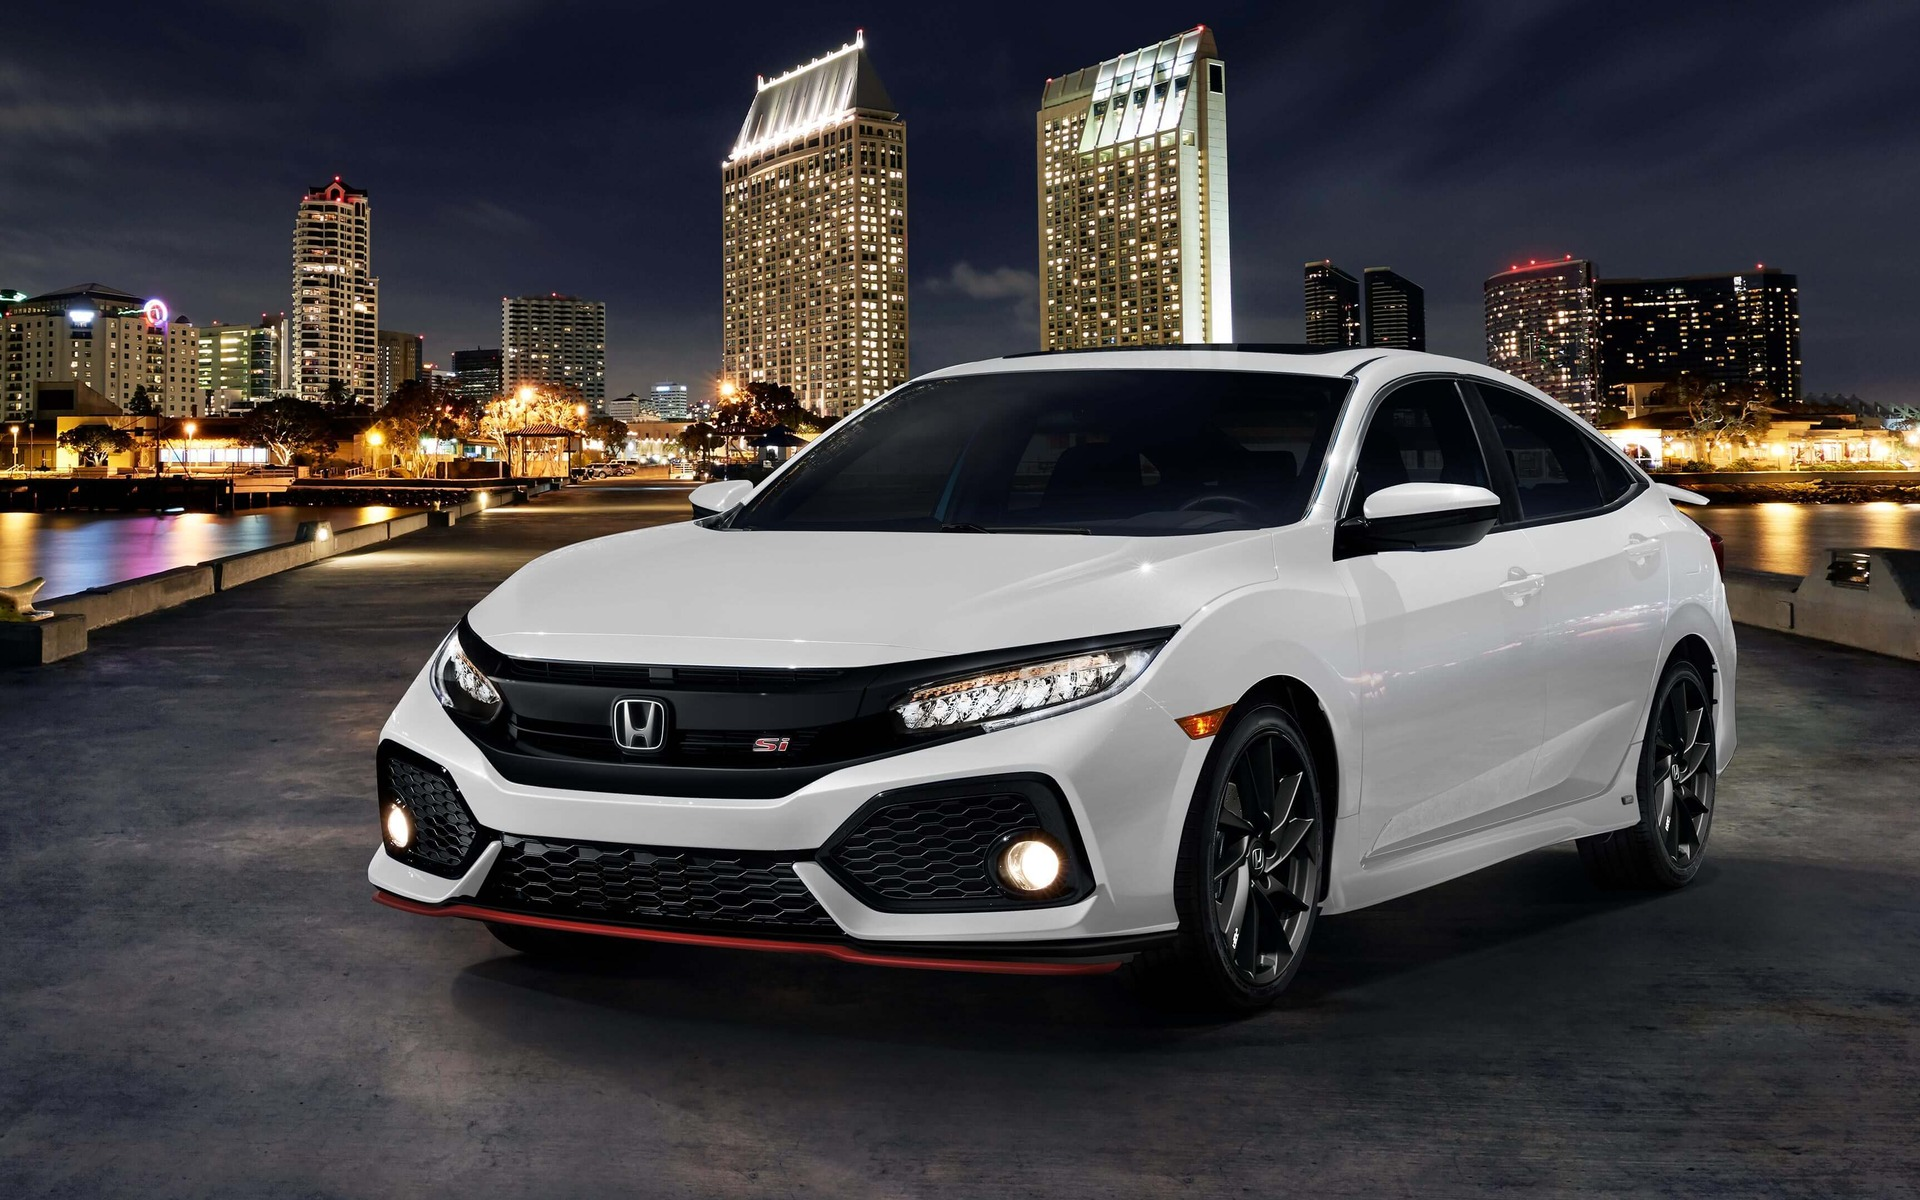 2018 Honda Civic Si HFP Coupe